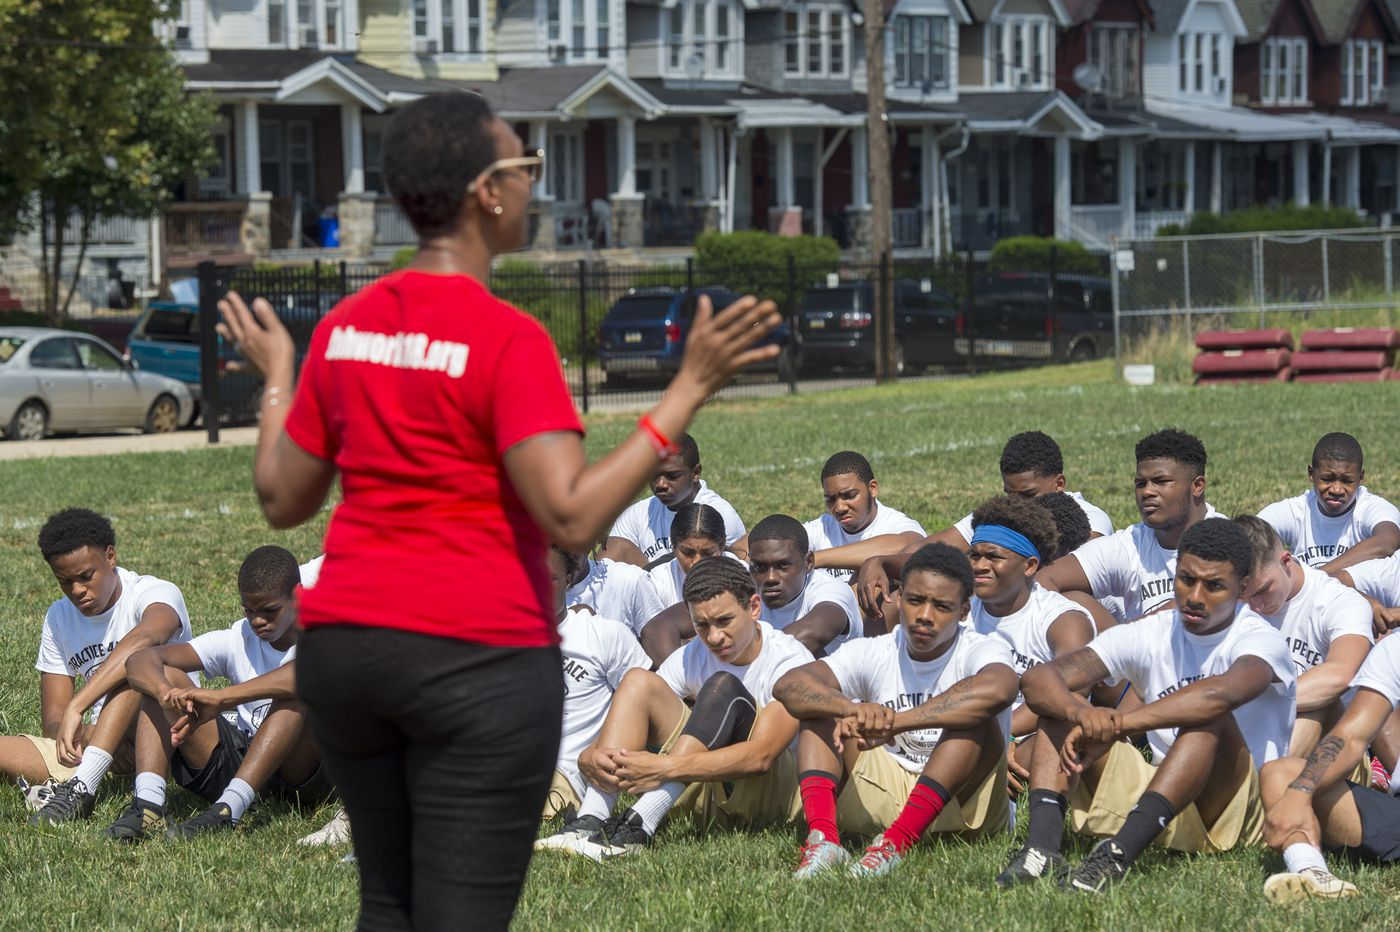 Boys' Latin, Frankford football teams reunite on field in a 'Practice 4 Peace'